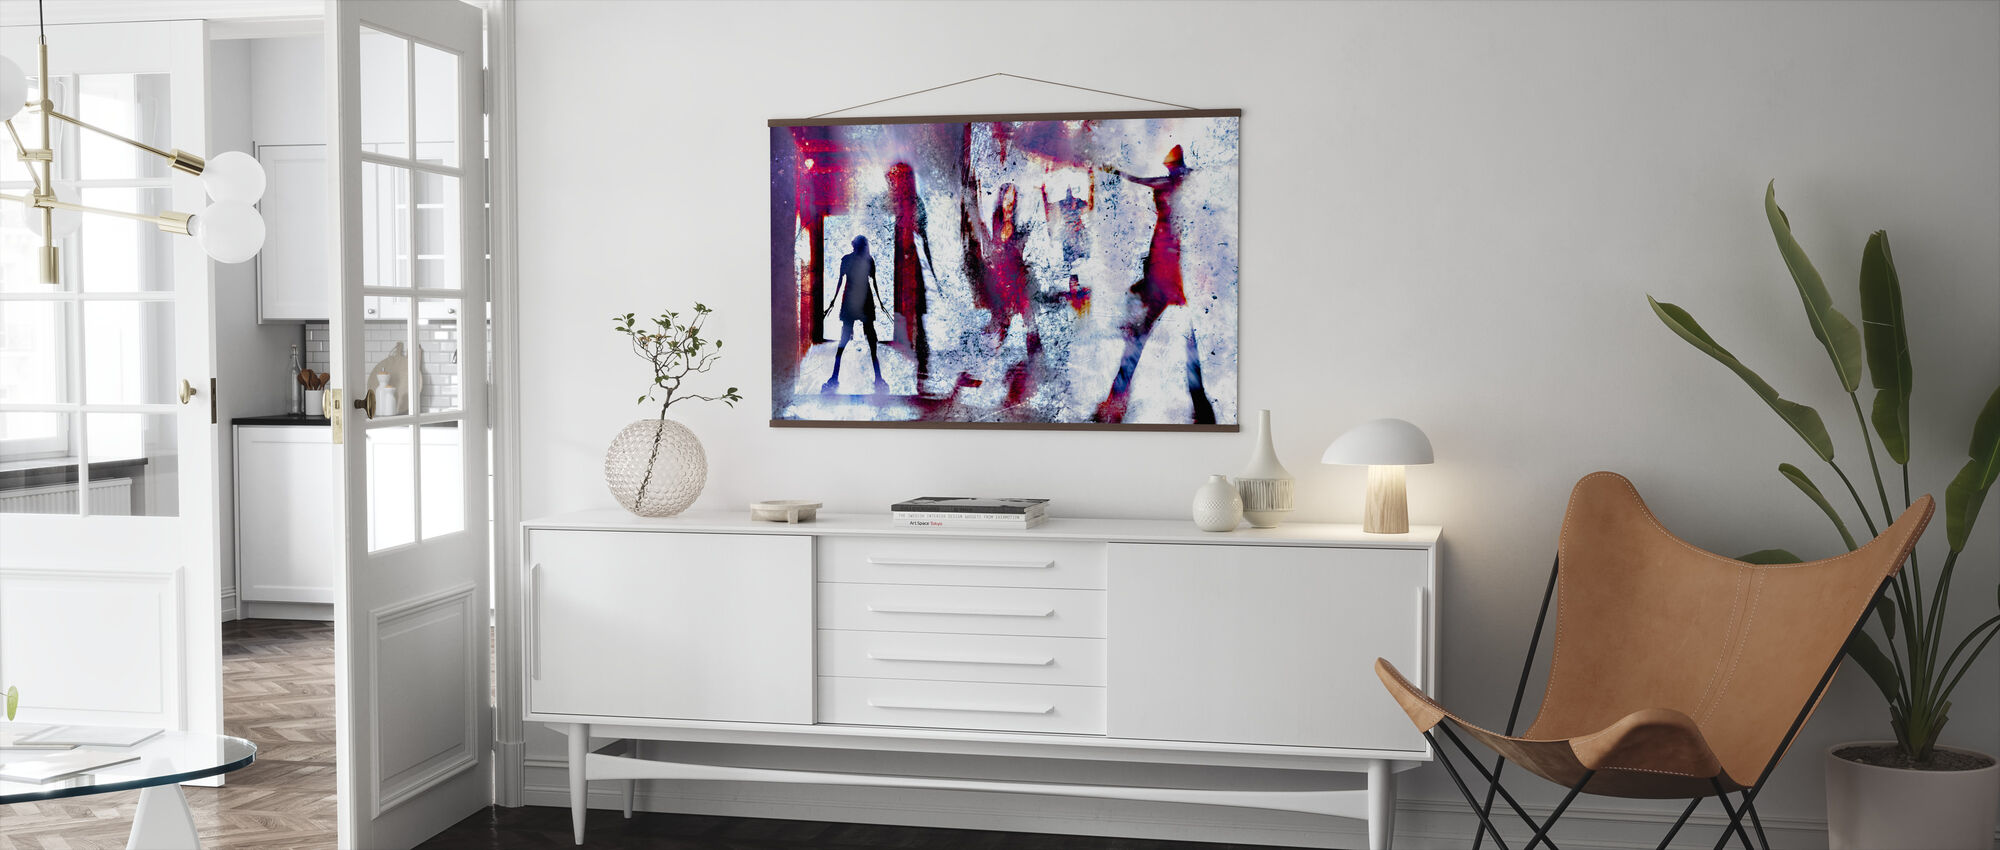 These Walls are Alive - Poster - Living Room